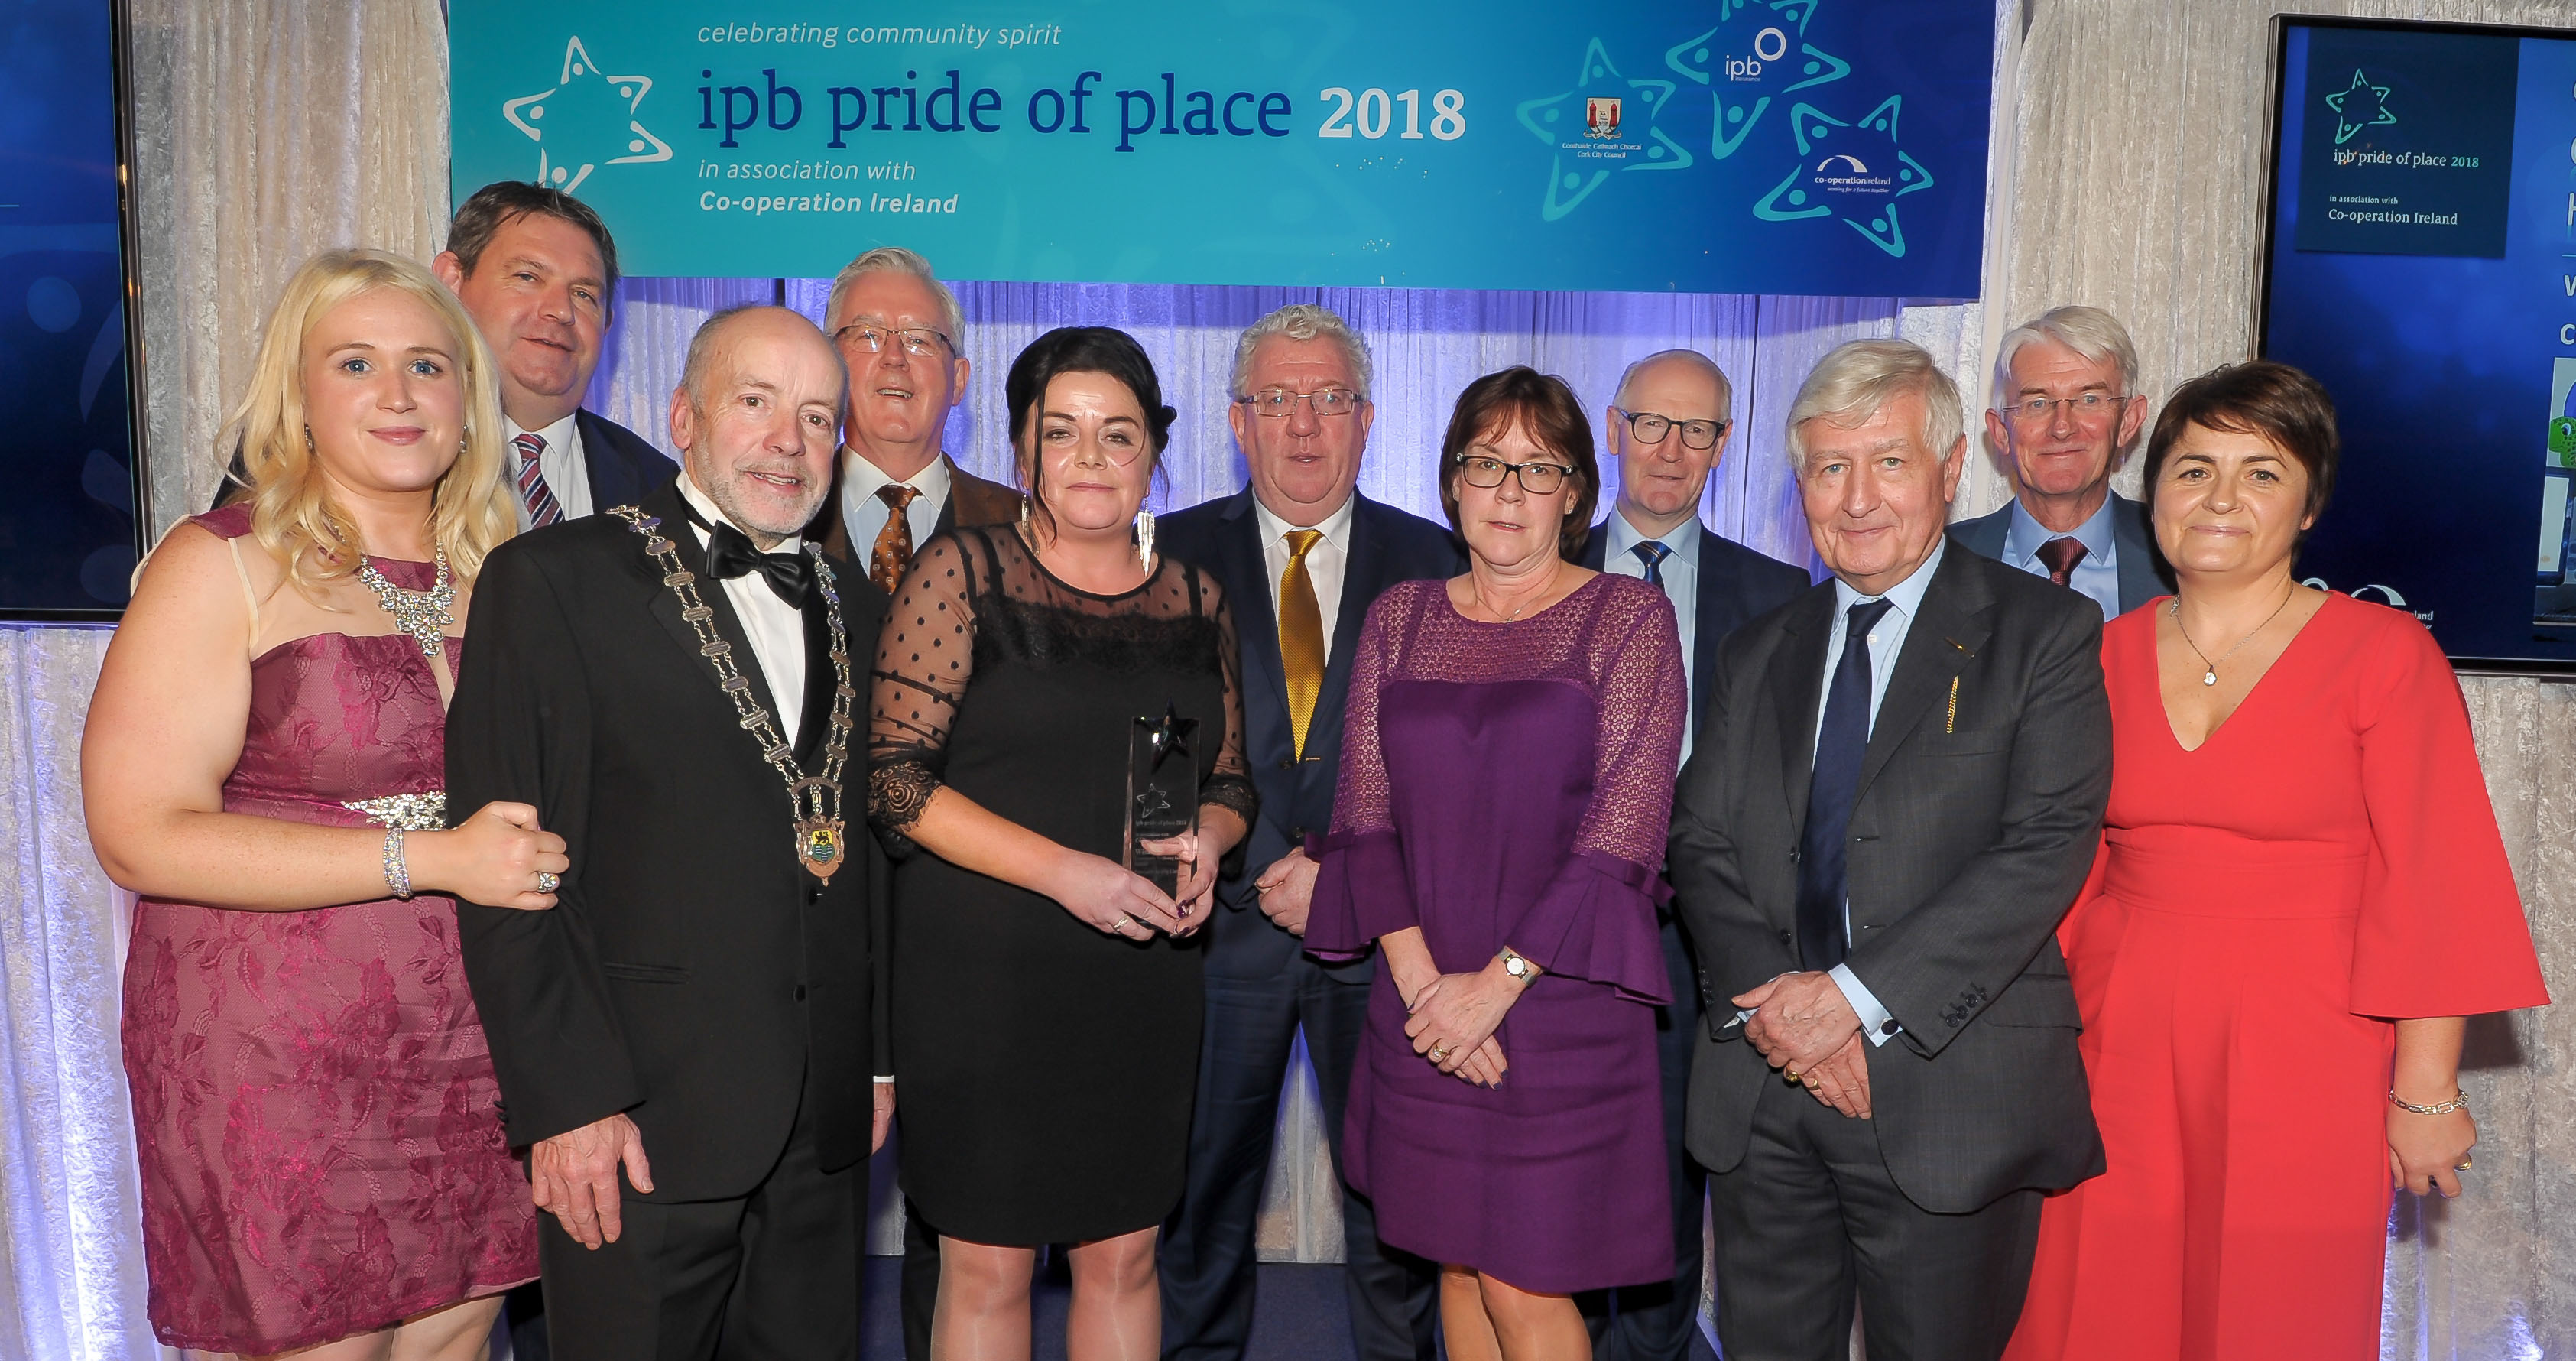 Leitrim group wins Pride of Place award